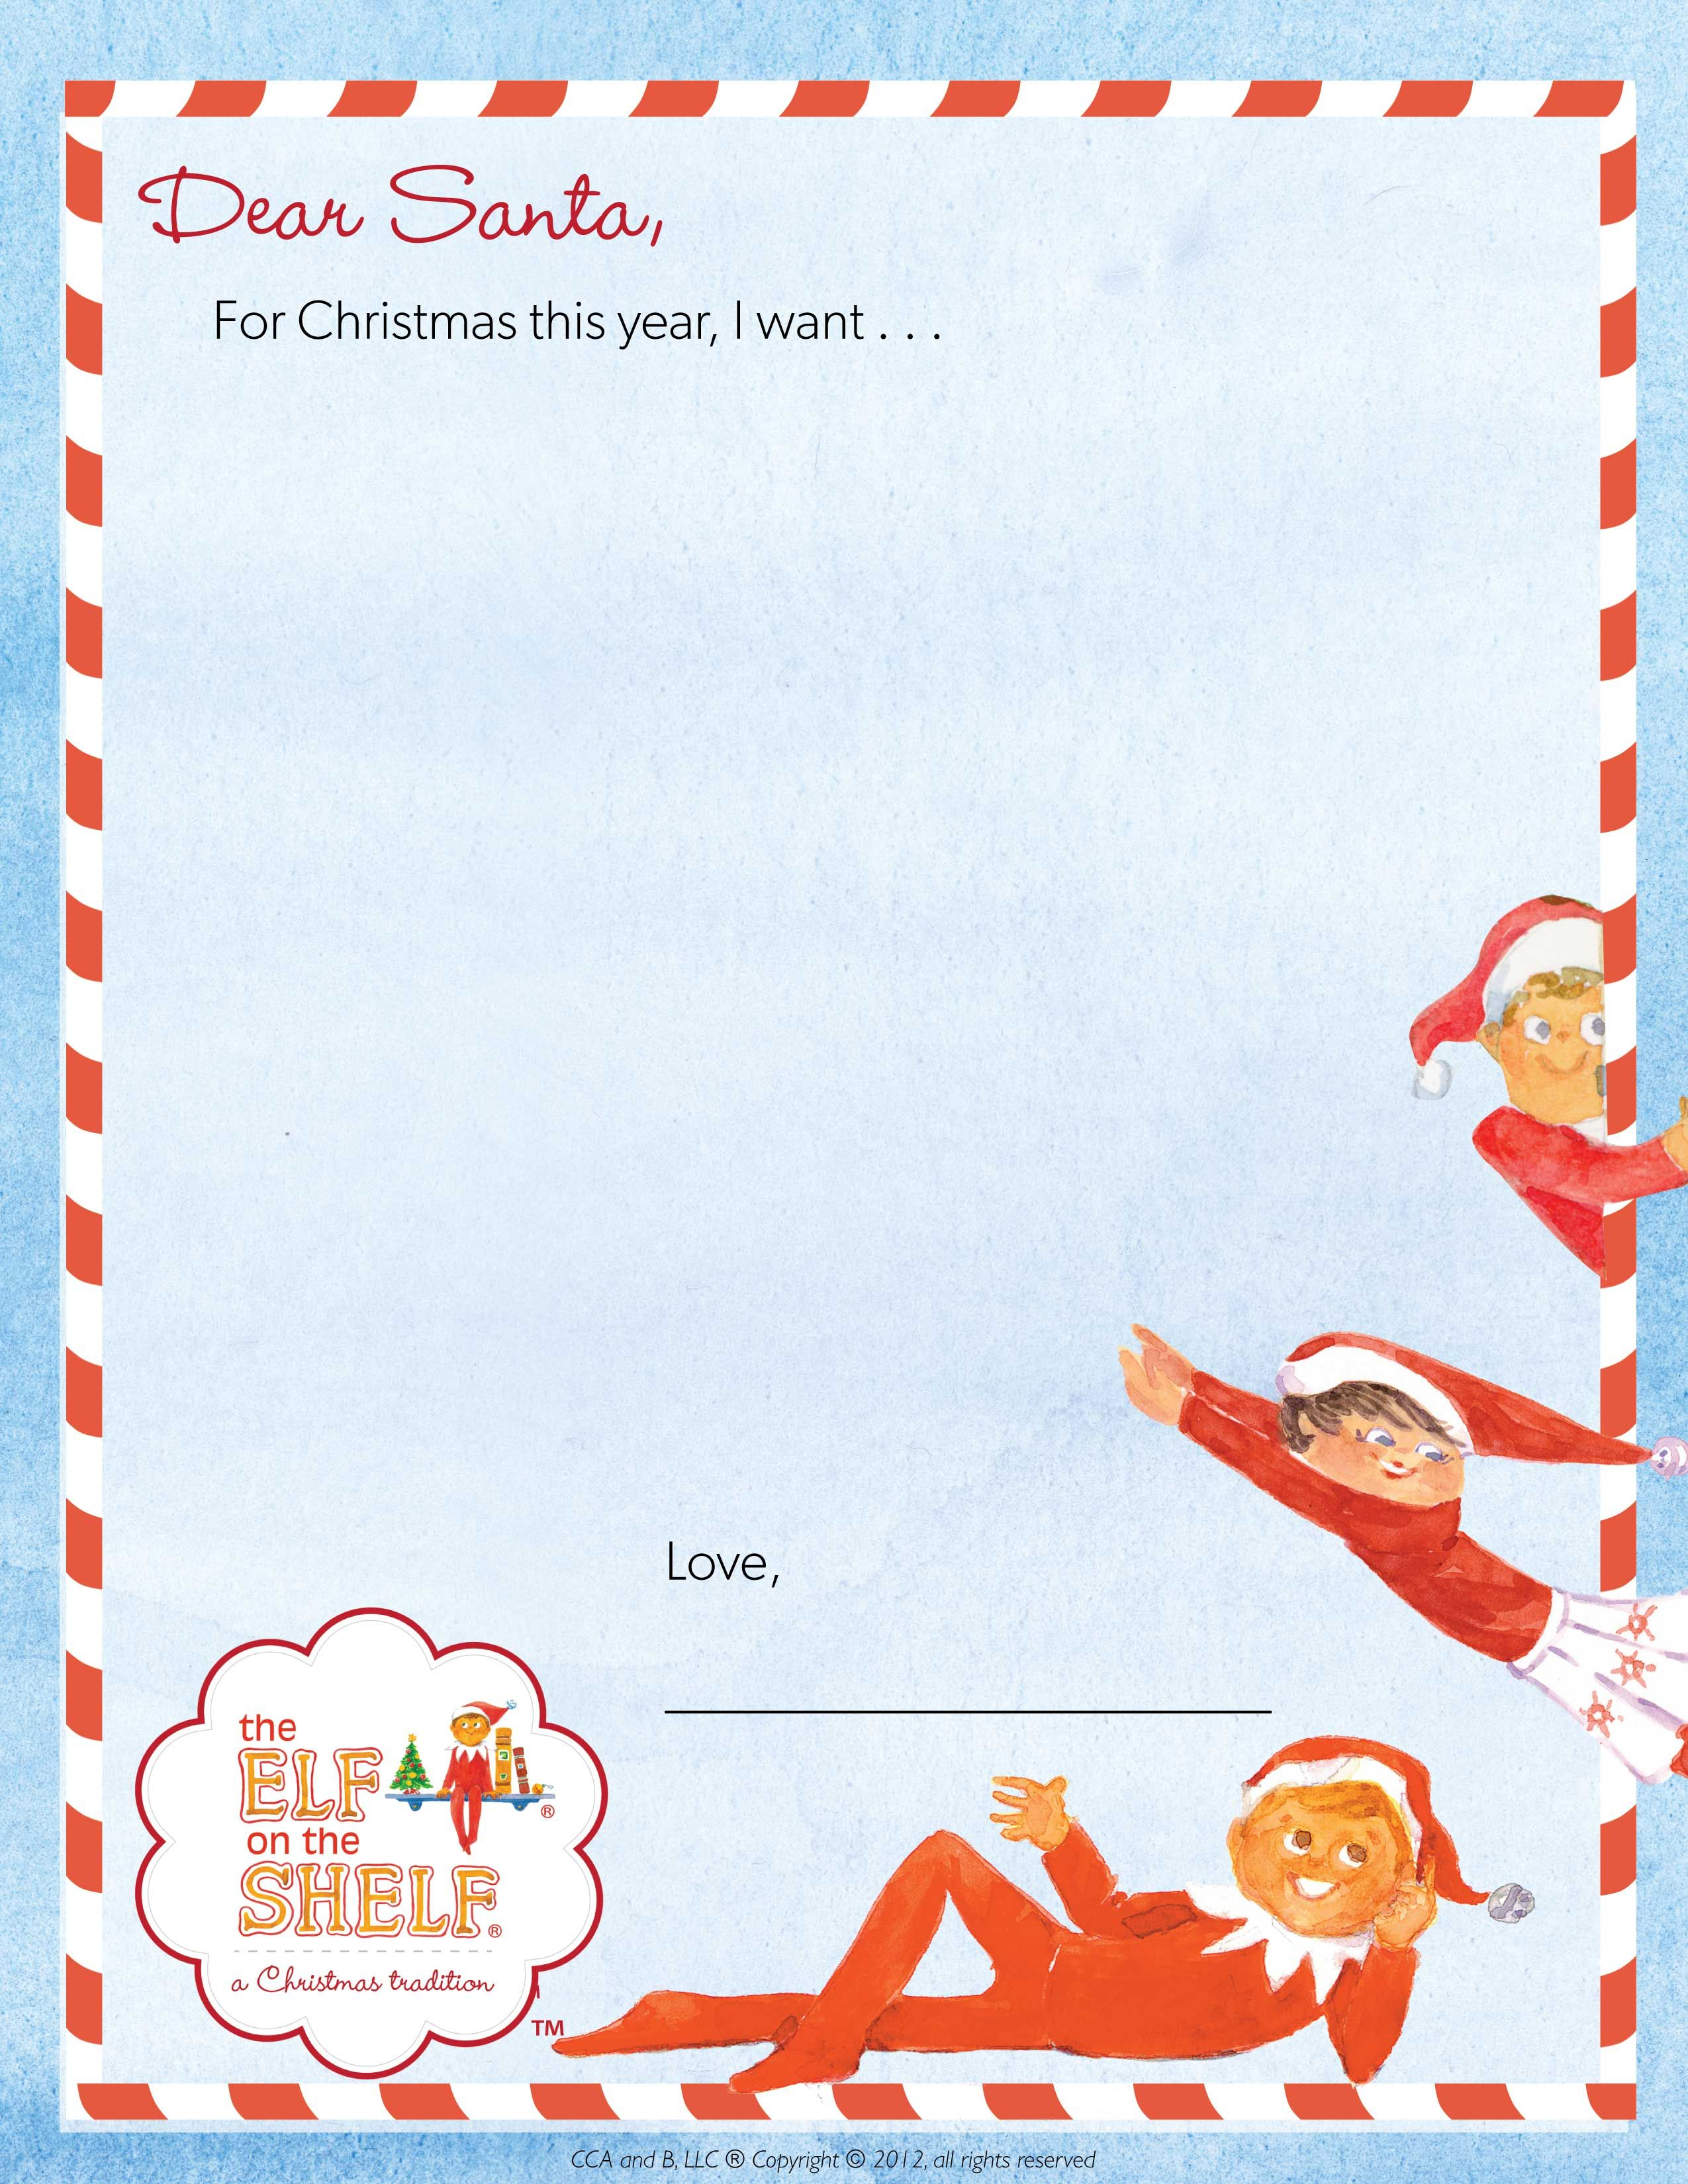 There Is No Better Time Than Now To Write A Letter To Santa Claus